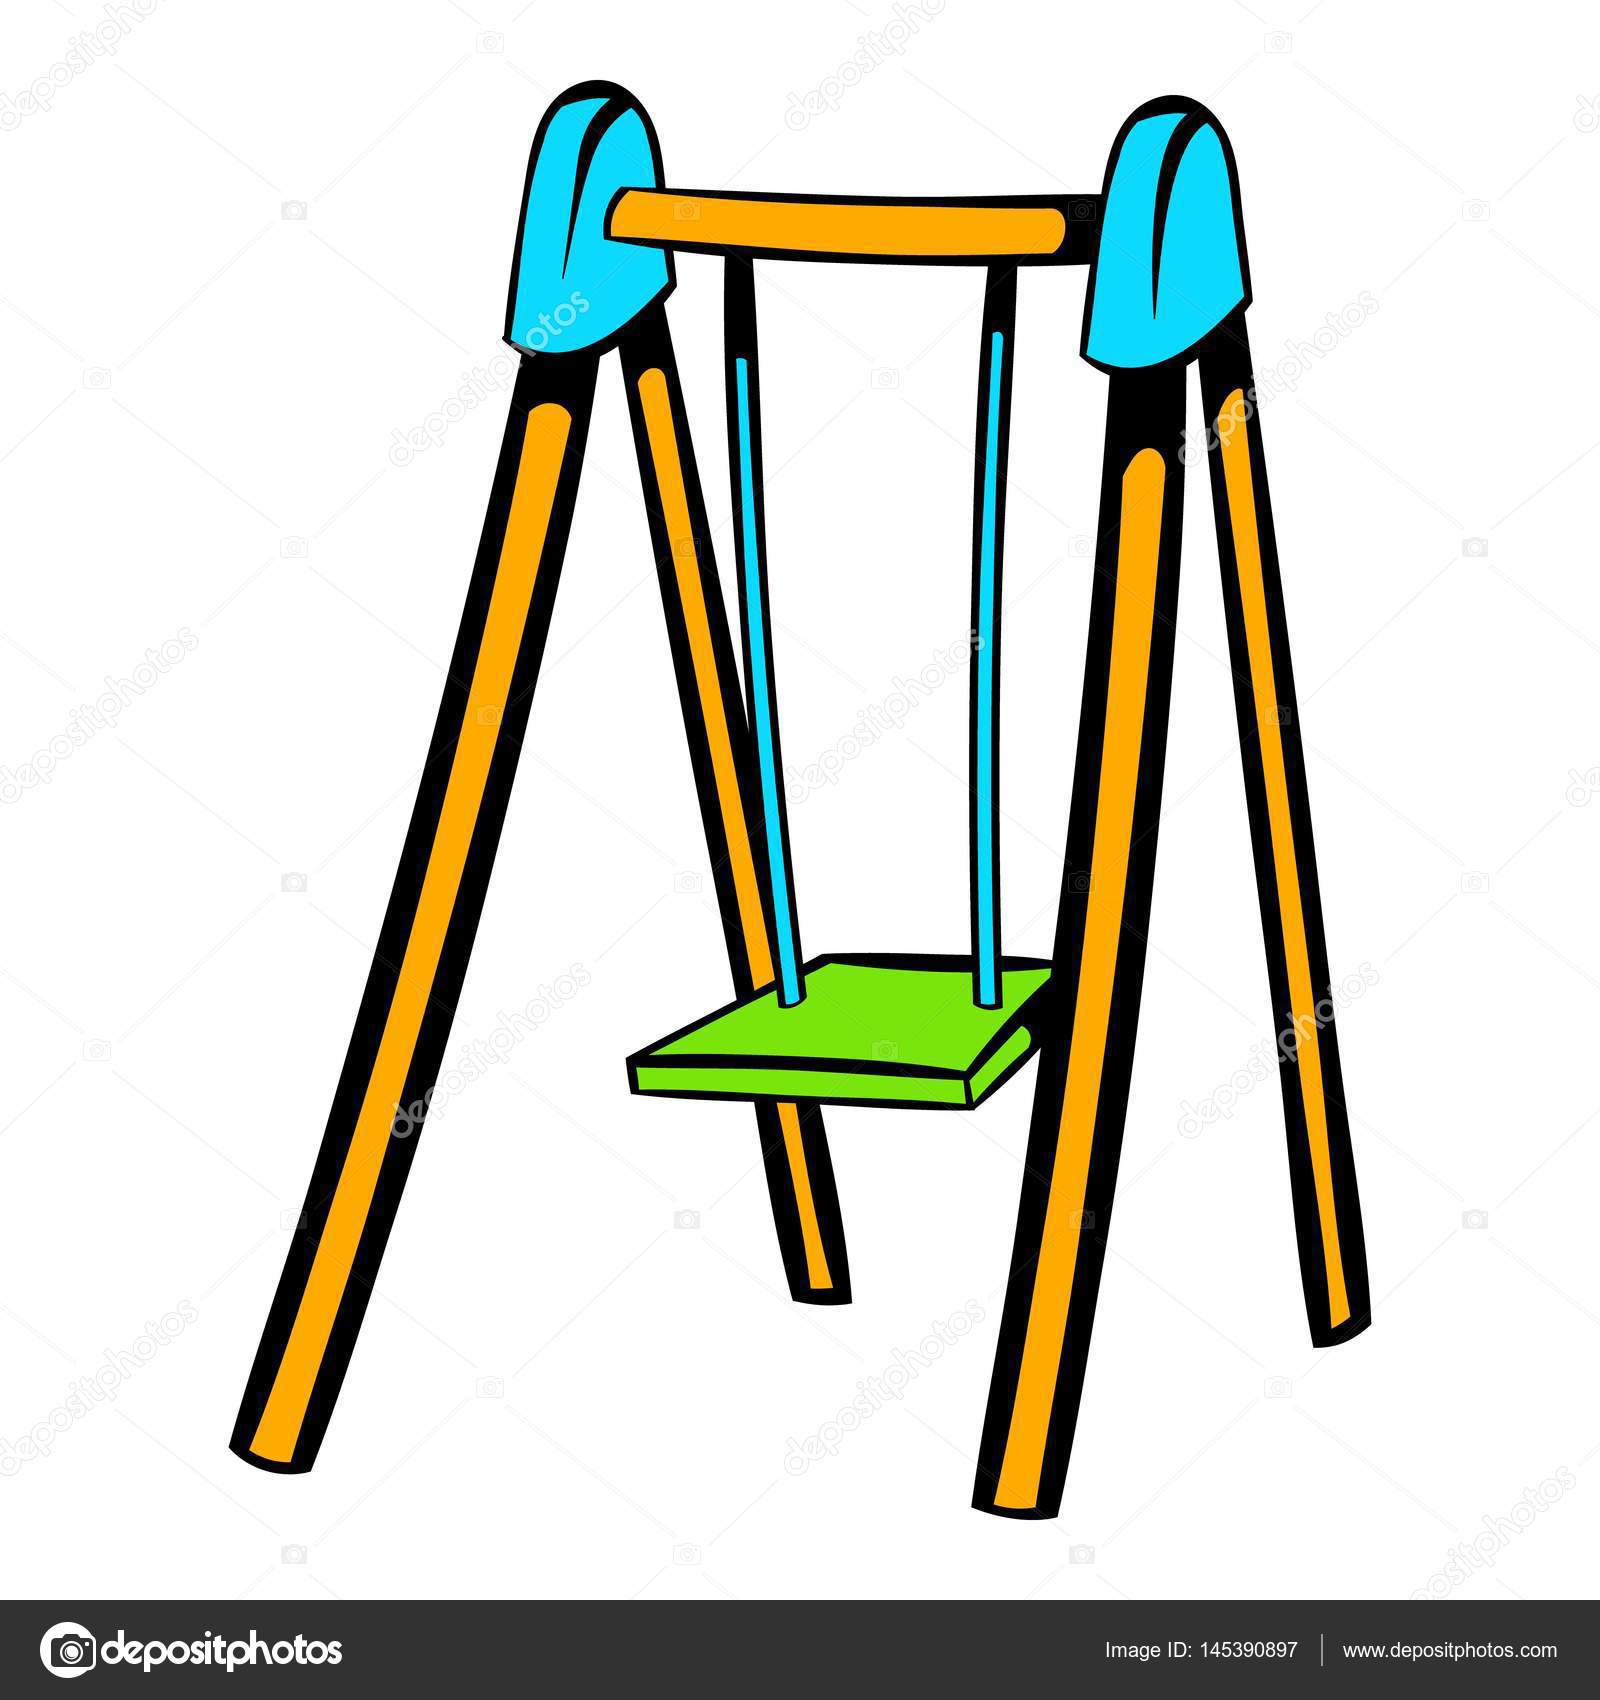 Cartoon Swing Images - Reverse Search